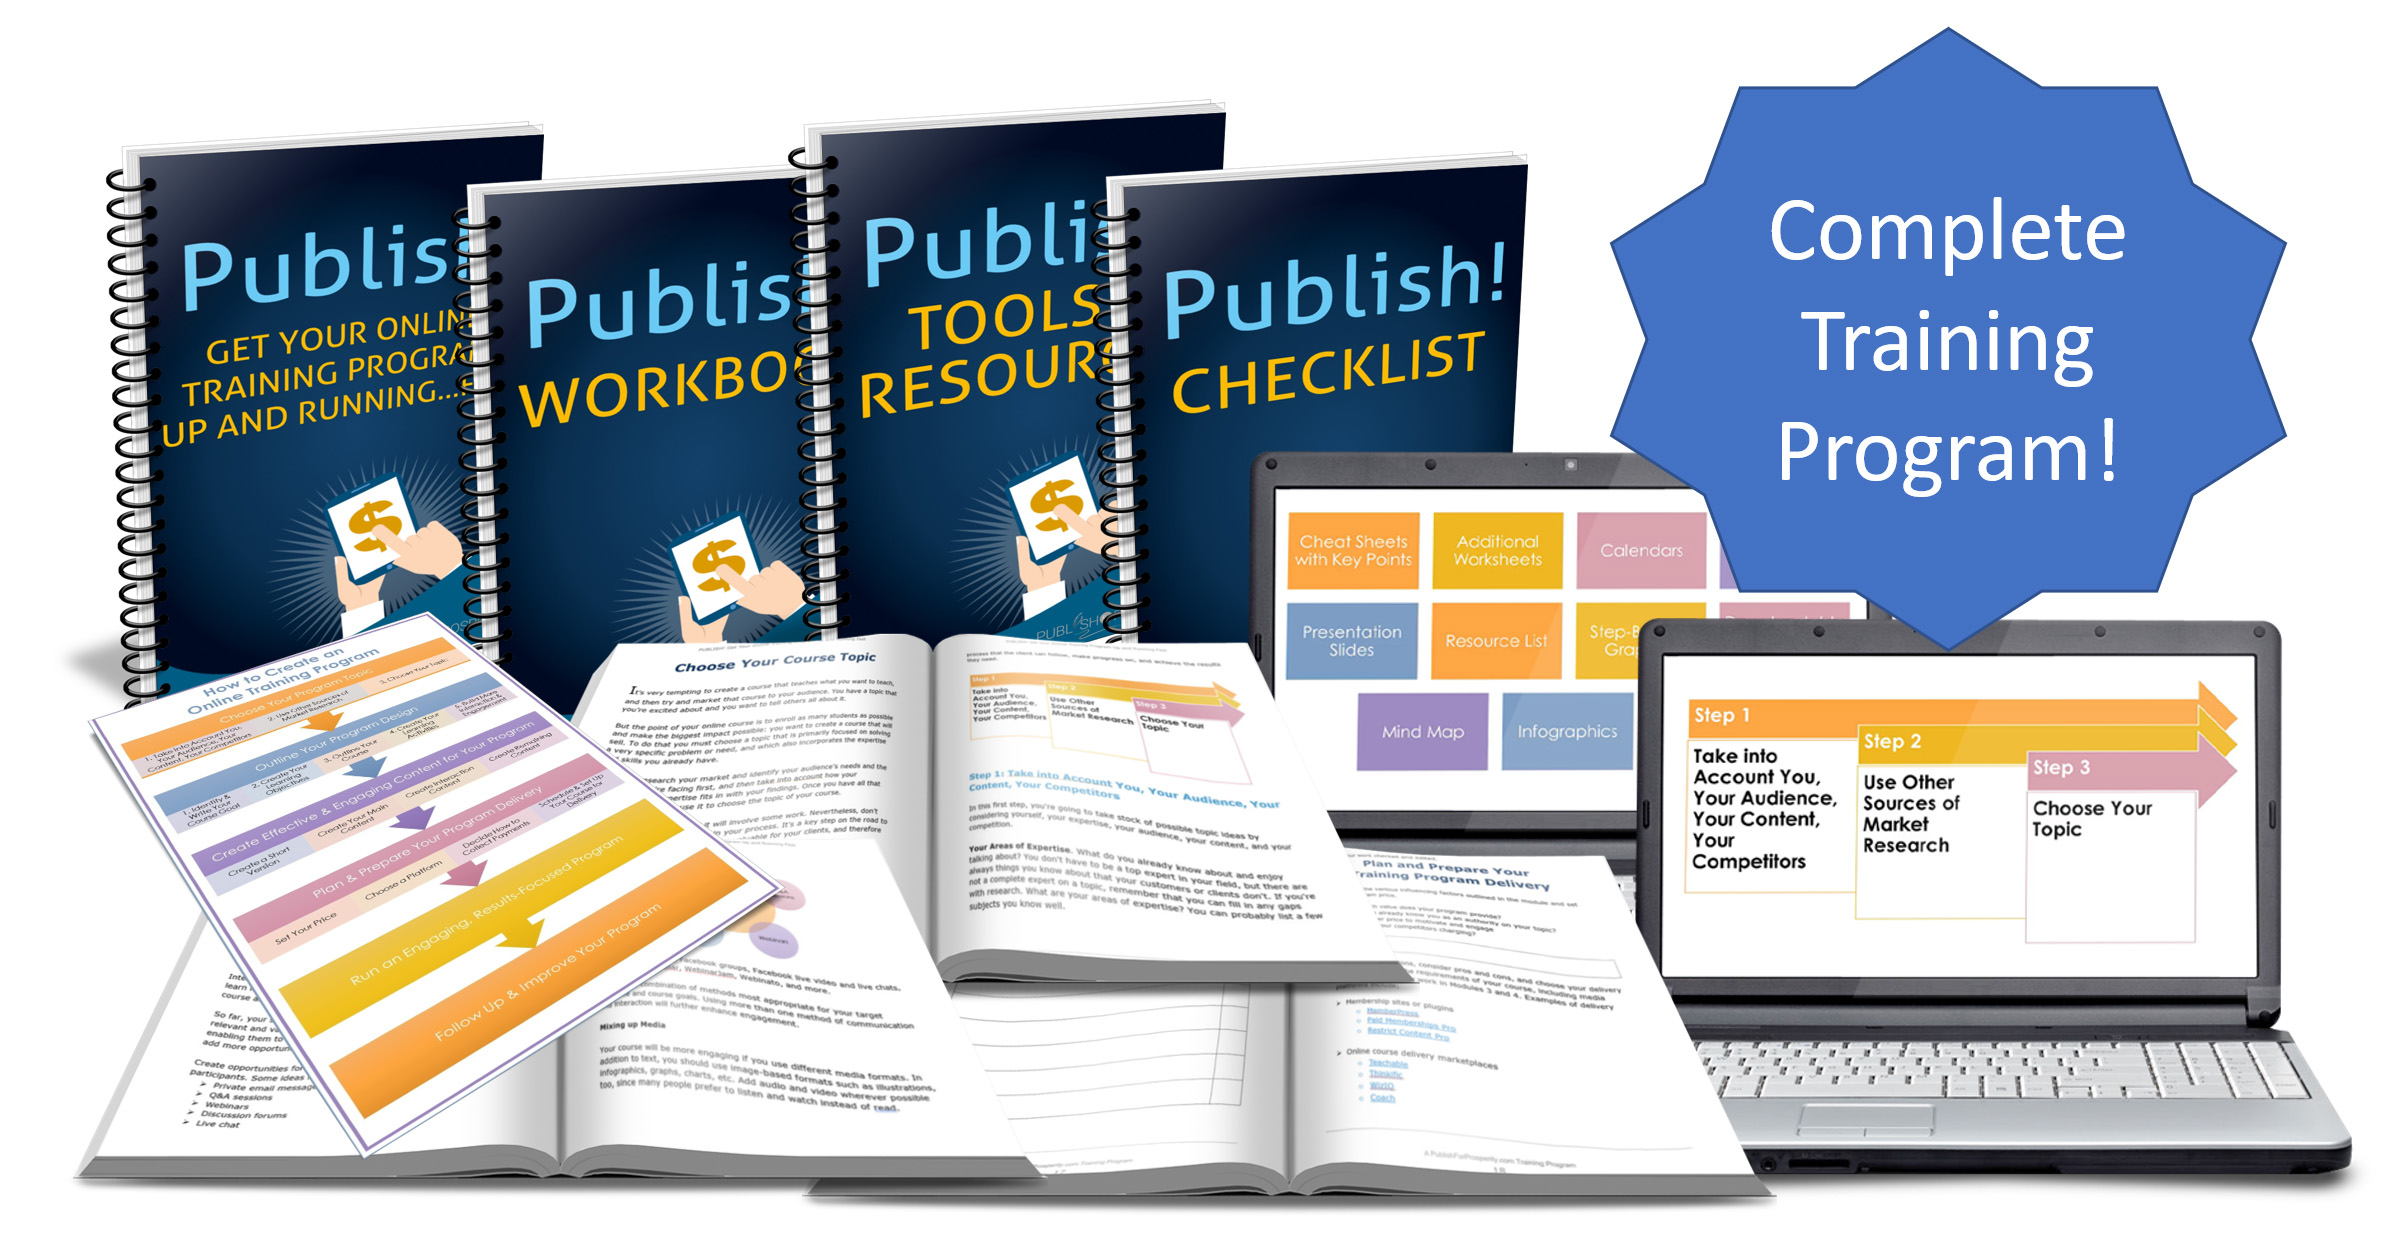 Publish! Get Your Online Training Program Up and Running...Fast